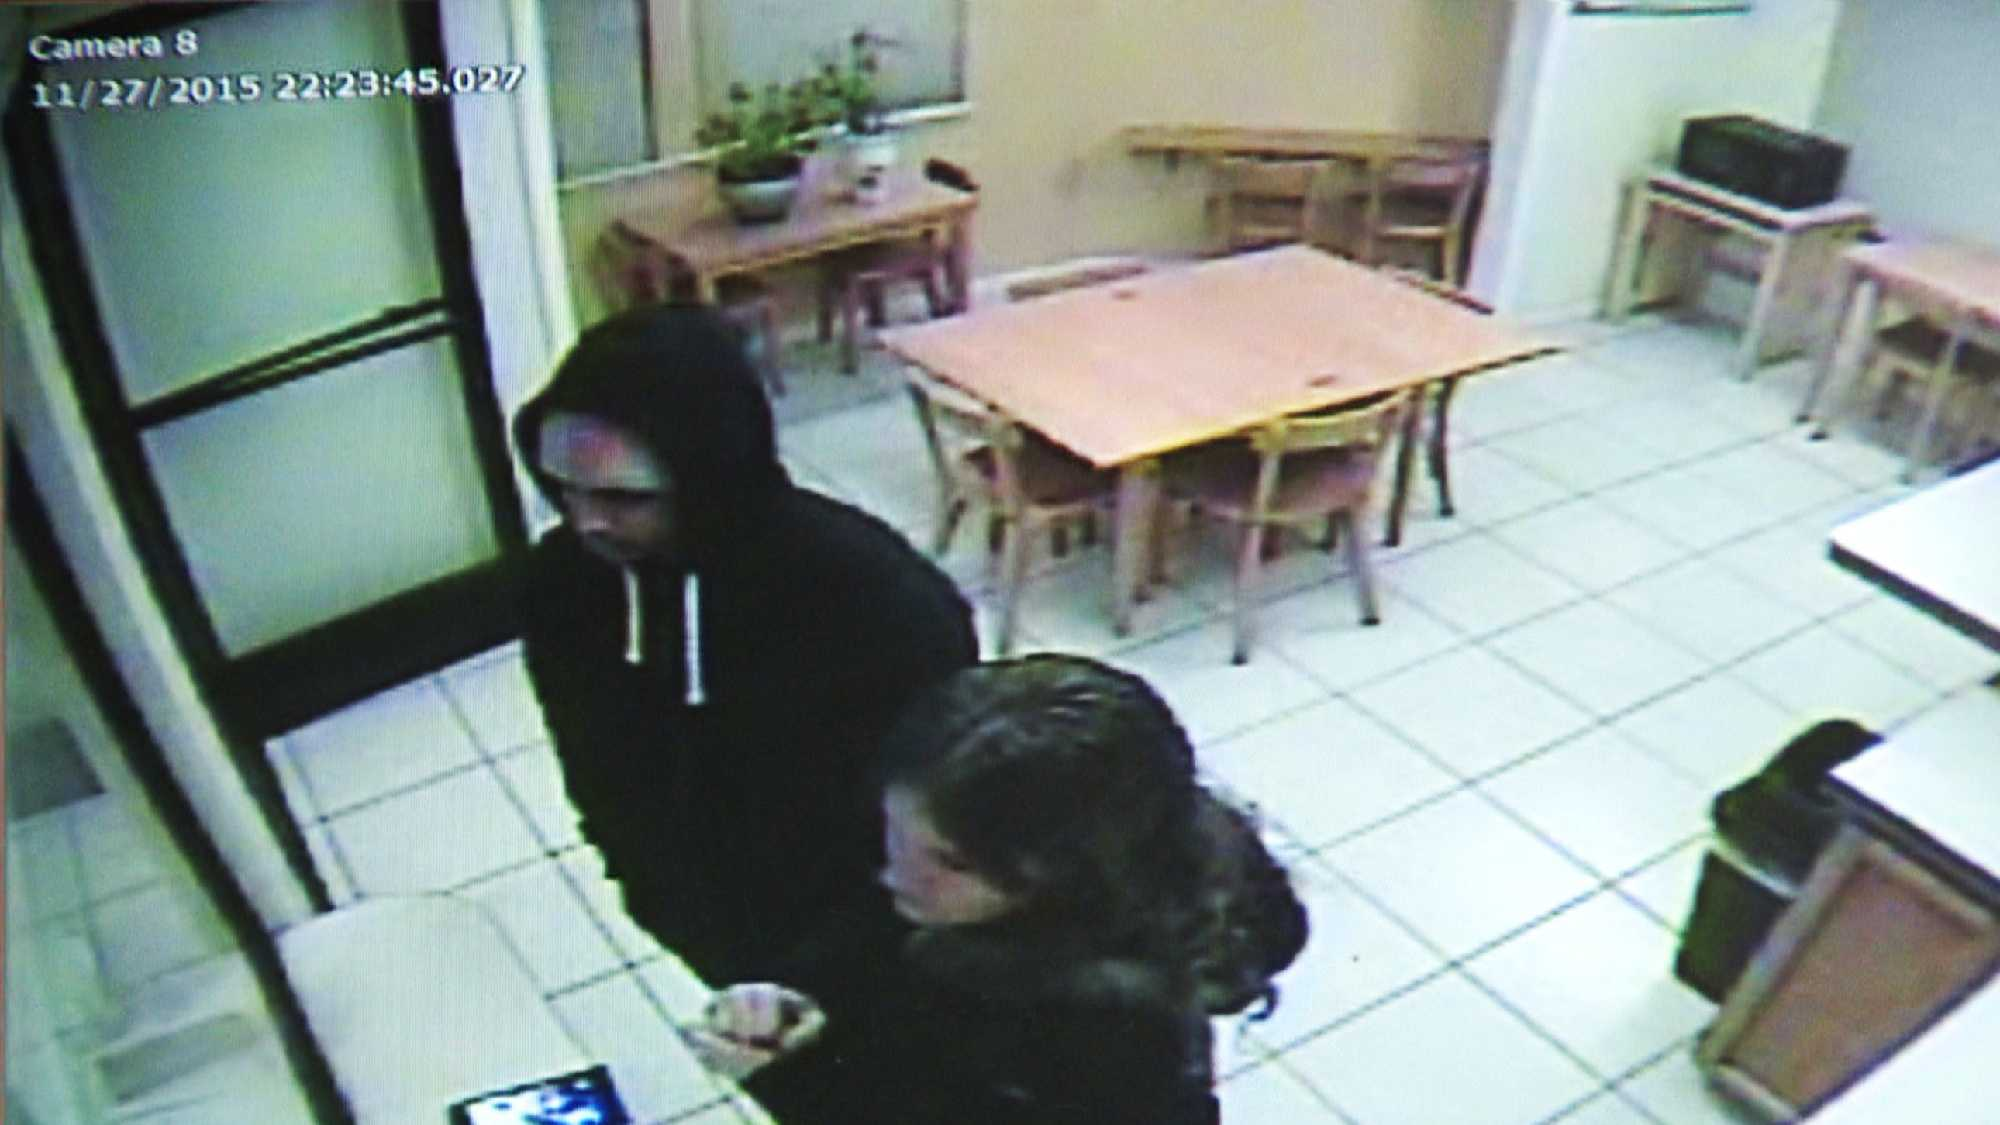 Huntsman and Curiel are seen checking into a Motel 6 in Northern California on Nov. 27, 2015.